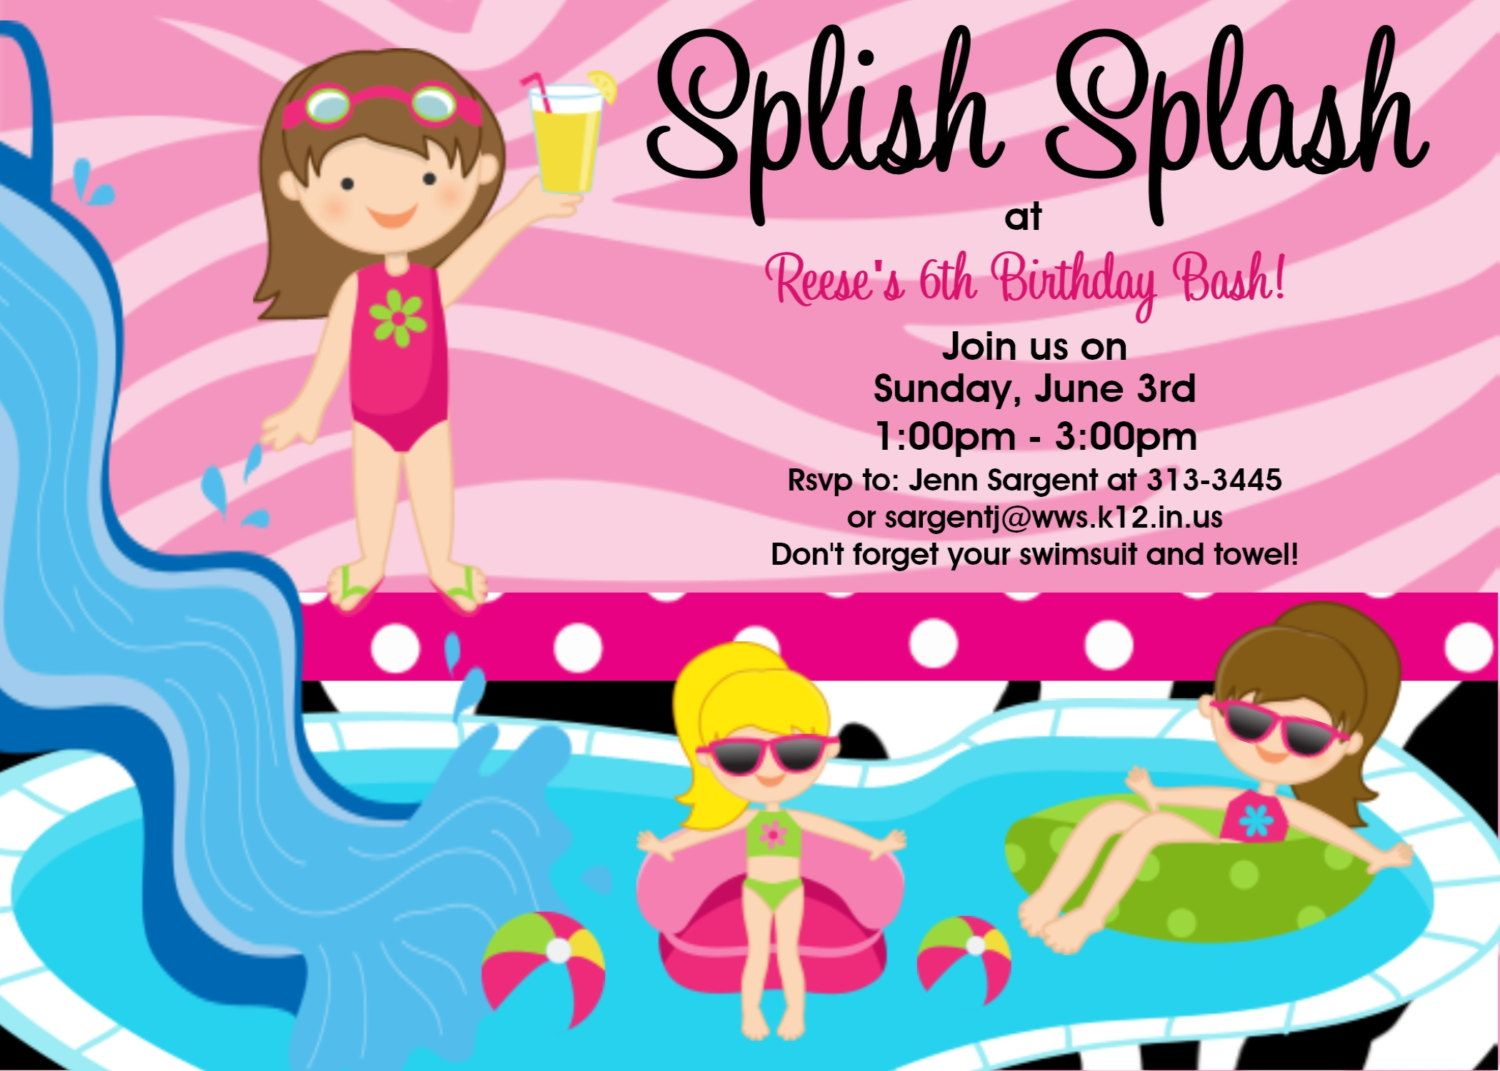 invitation for birthday pool party ; 1405034a0f032de54012be7f1eebdc97